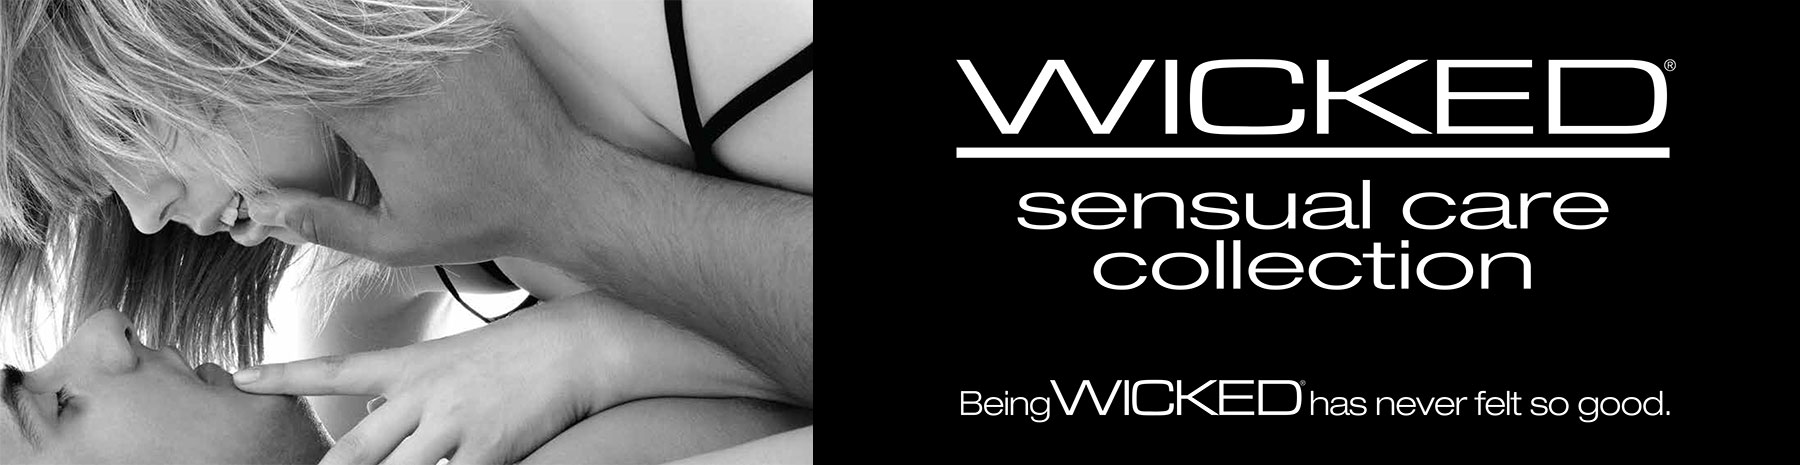 Wicked Sensual Care at Bed Time Toys